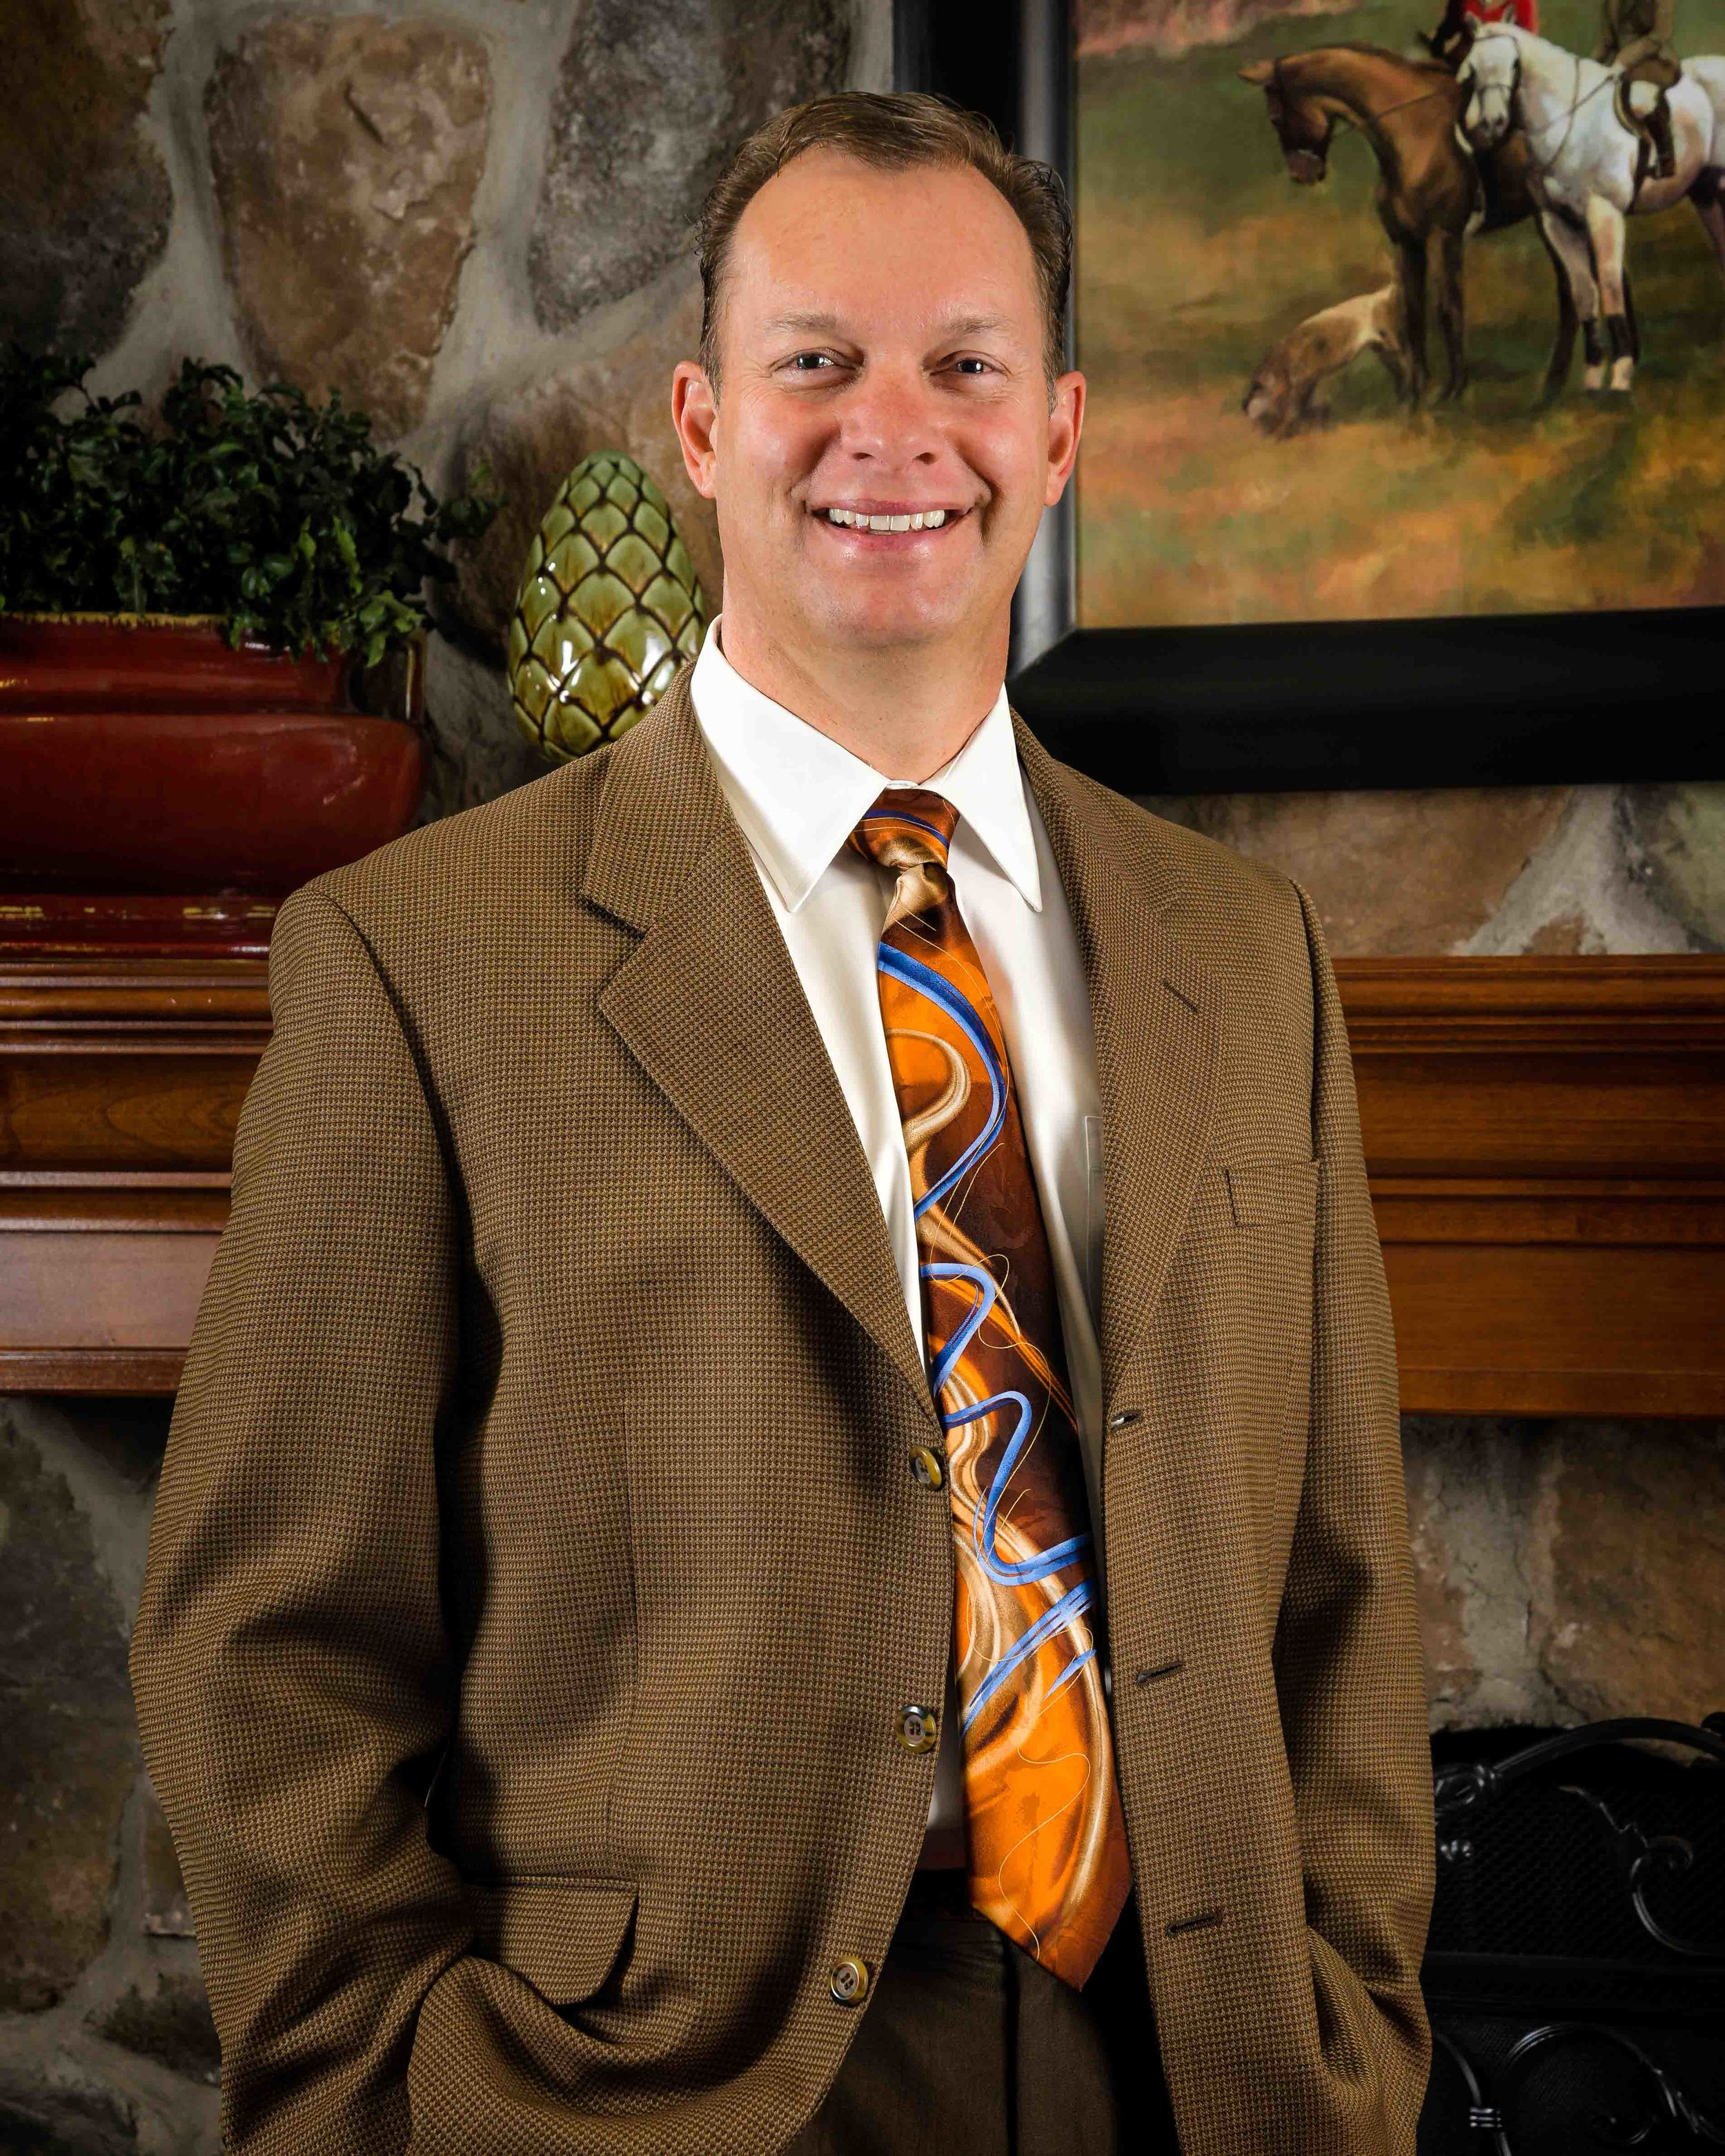 Kevin Sanger, General Manager, Colorado Springs Country Club